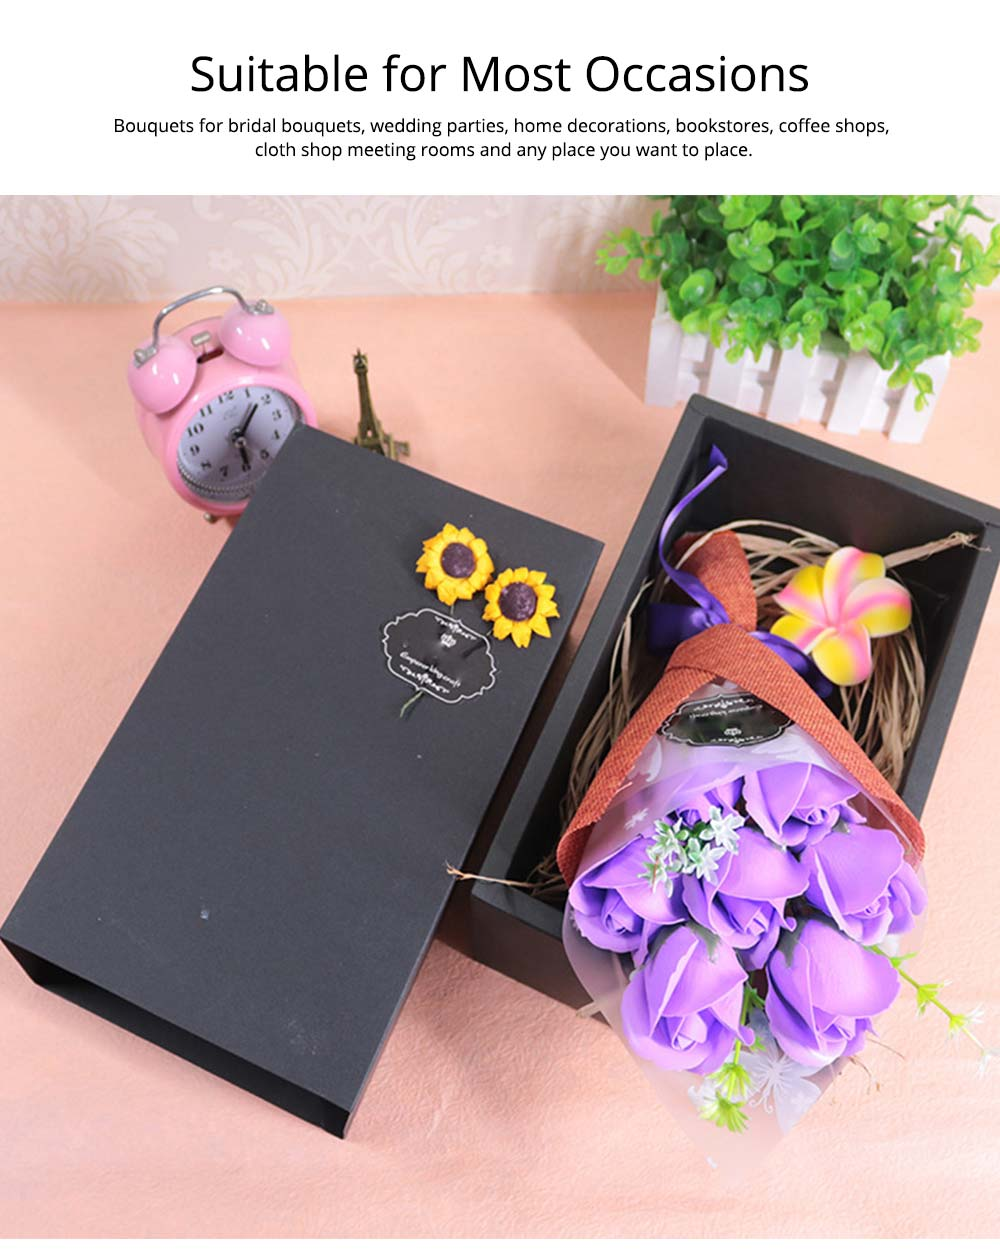 7 Romantic Love Roses Soap Flowers with Black Cardboard Box for Girlfriend Valentine's Day Gift 4